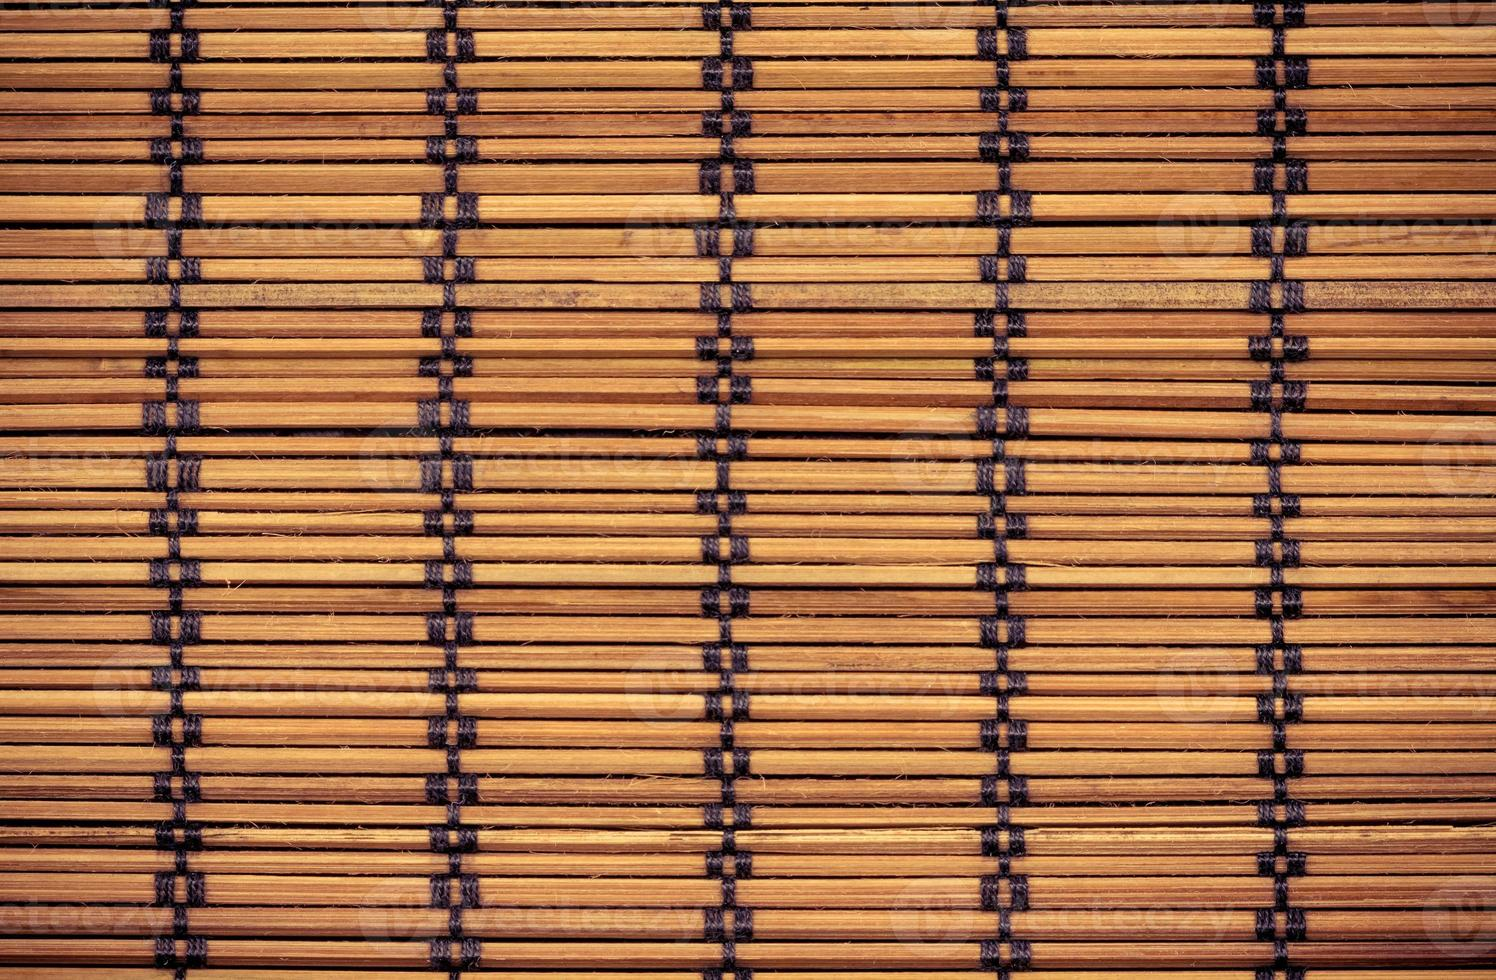 wood bamboo texture for background photo